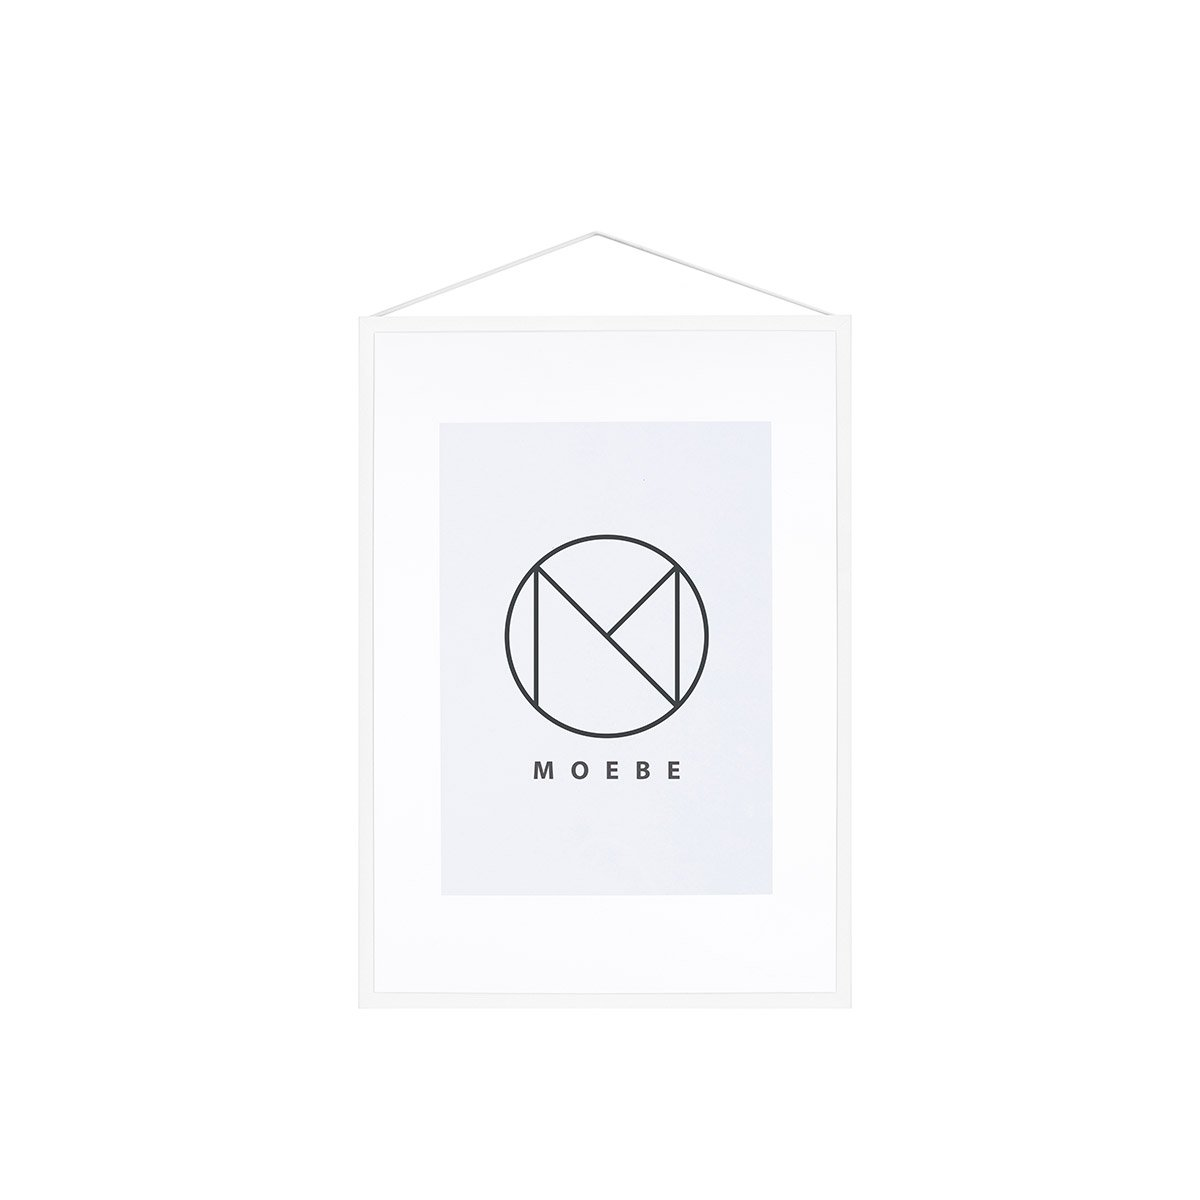 Moebe Copenhagen - Moebe - Frame by Moebe - White Frame A3  | Simple Design | Danish Design - Nordic Living - Scandinavian Design